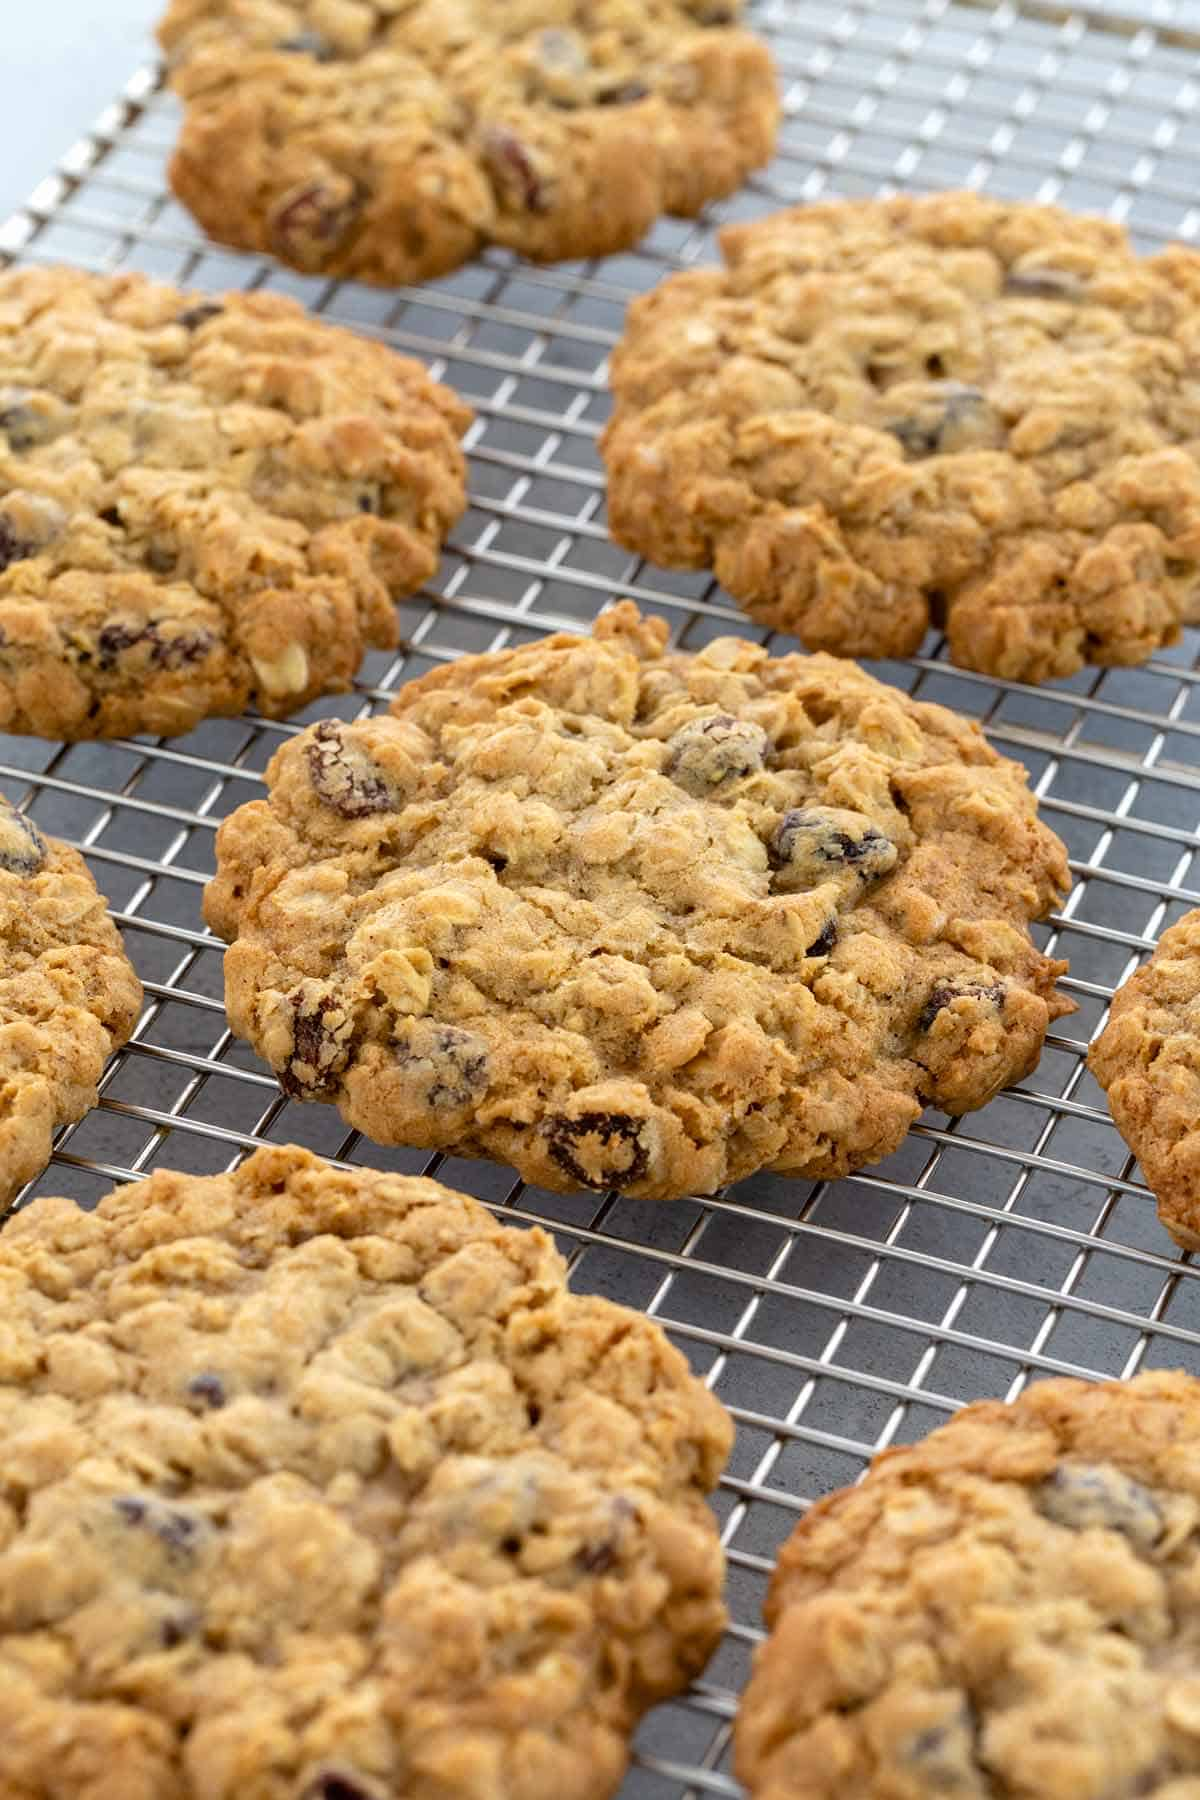 oatmeal raisin cookies cooling on a wire rack